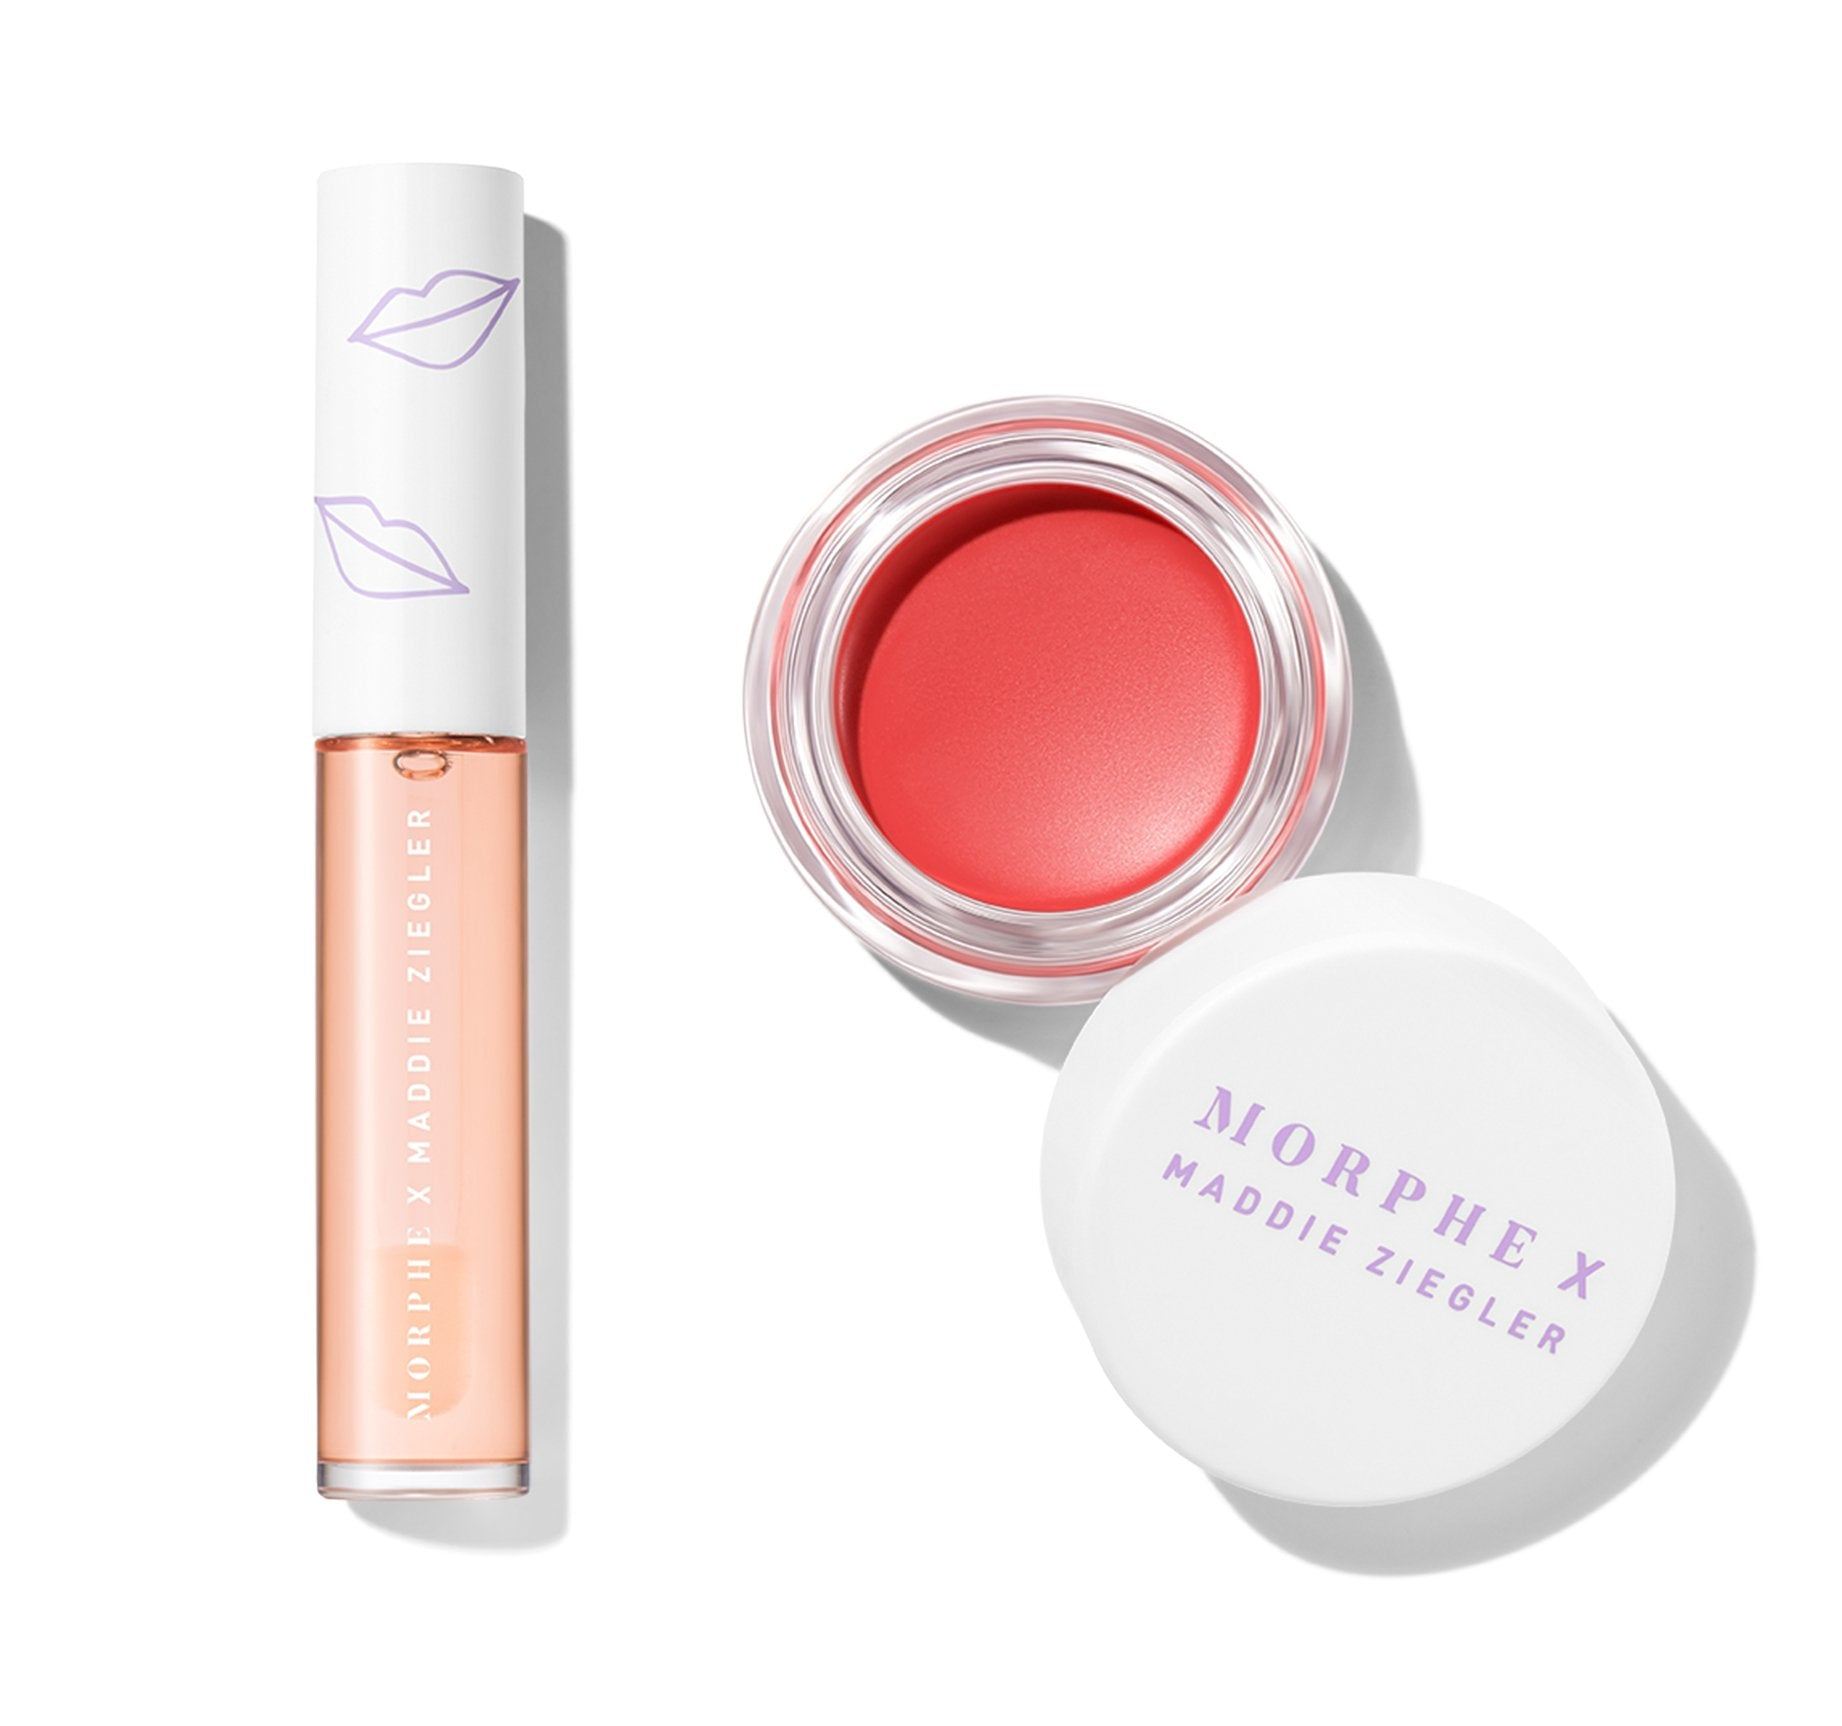 MORPHE X MADDIE ZIEGLER PEACH THAT POPS LIP & CHEEK DUO, view larger image